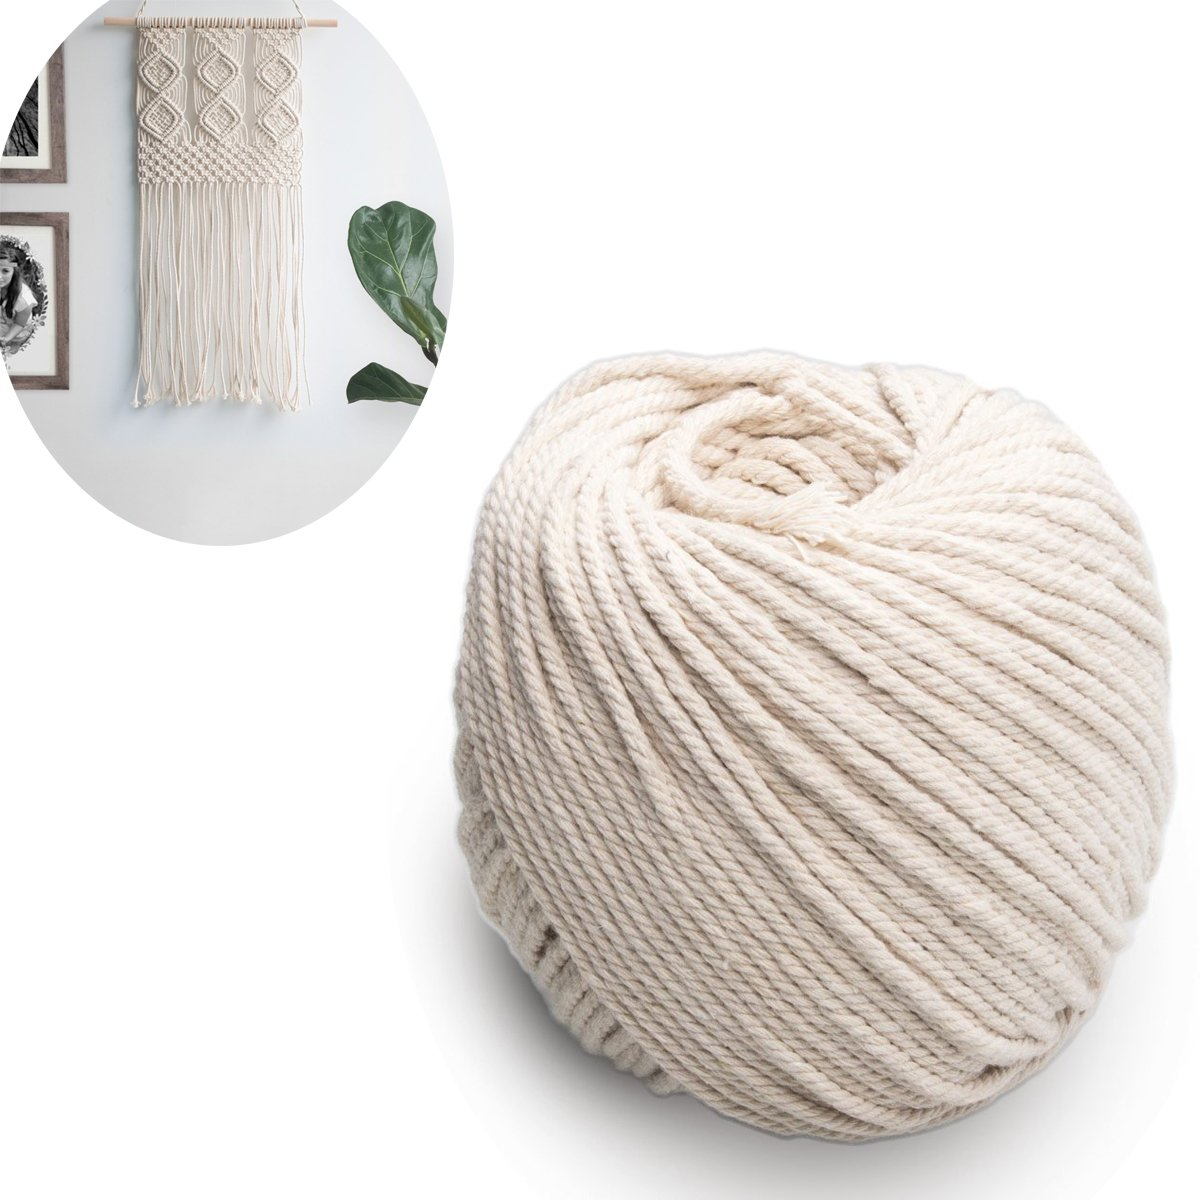 (4mm x 100m(about 109 yd)) 100% Natural Cotton Rope, CBTONE Handmade Decorations Natural Cotton Bohemia Macrame DIY Wall Hanging Plant Hanger Craft Making Knitting Cord Rope Natural Color Beige